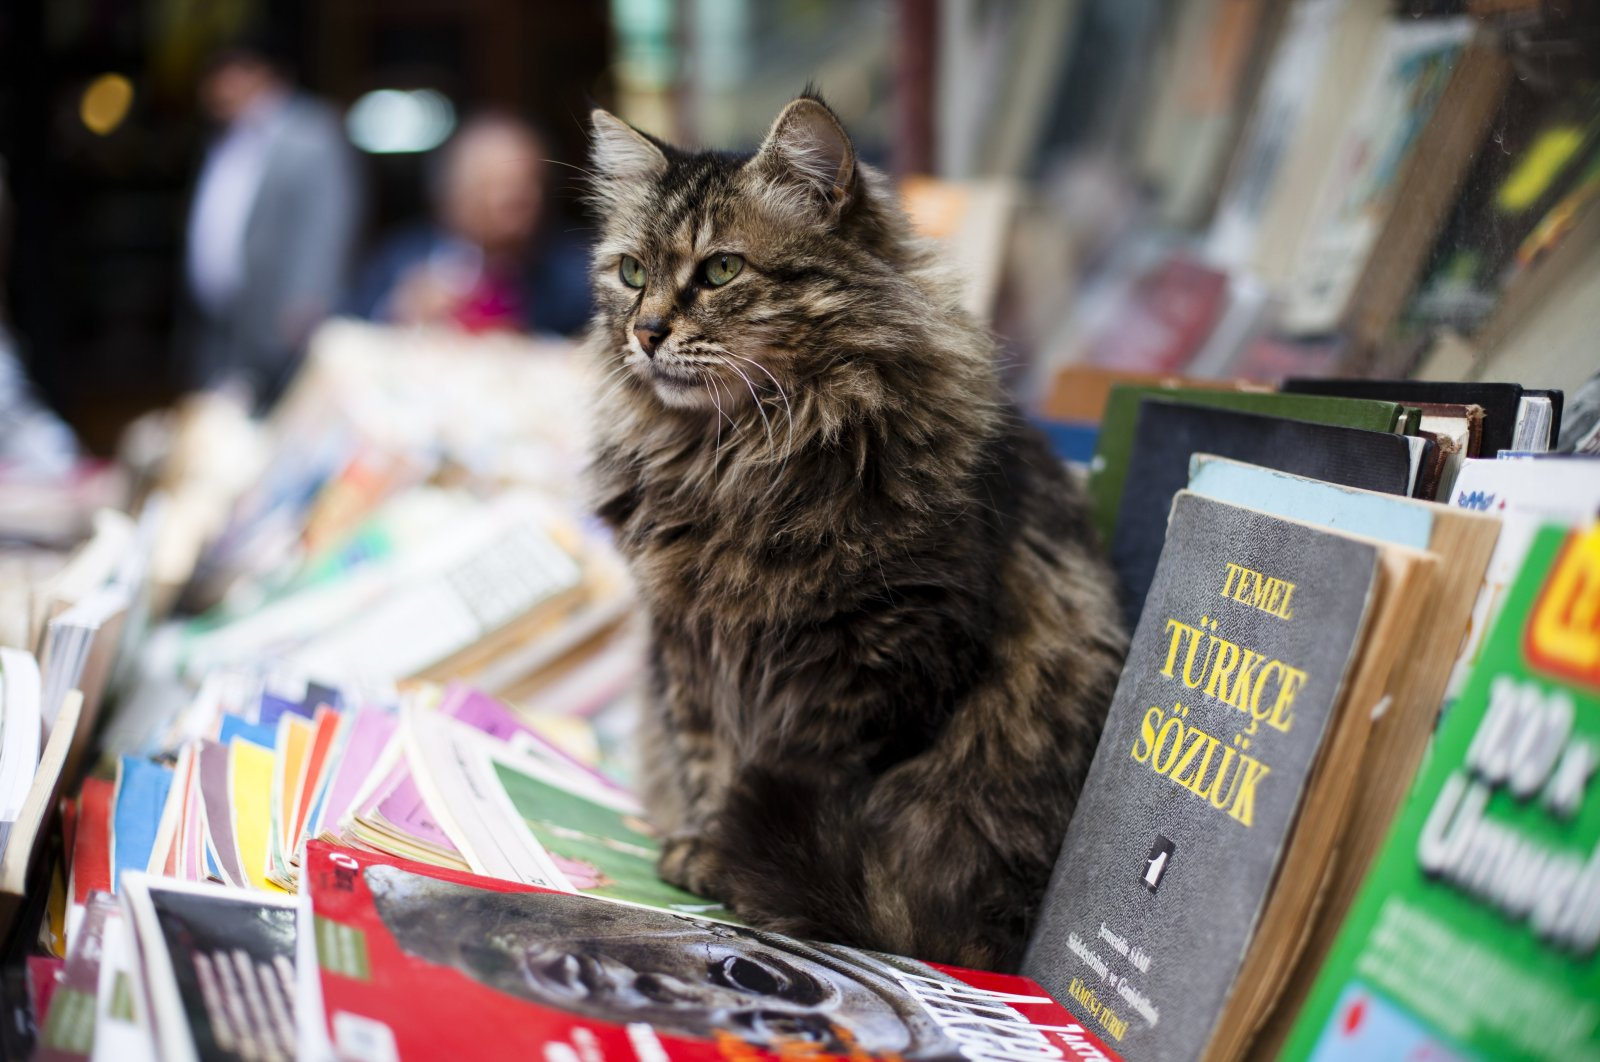 A cat sits on old books at a bookstore stand selling secondhand books in the streets of Galata, Istanbul, Turkey, March 29, 2011. (Getty Images)